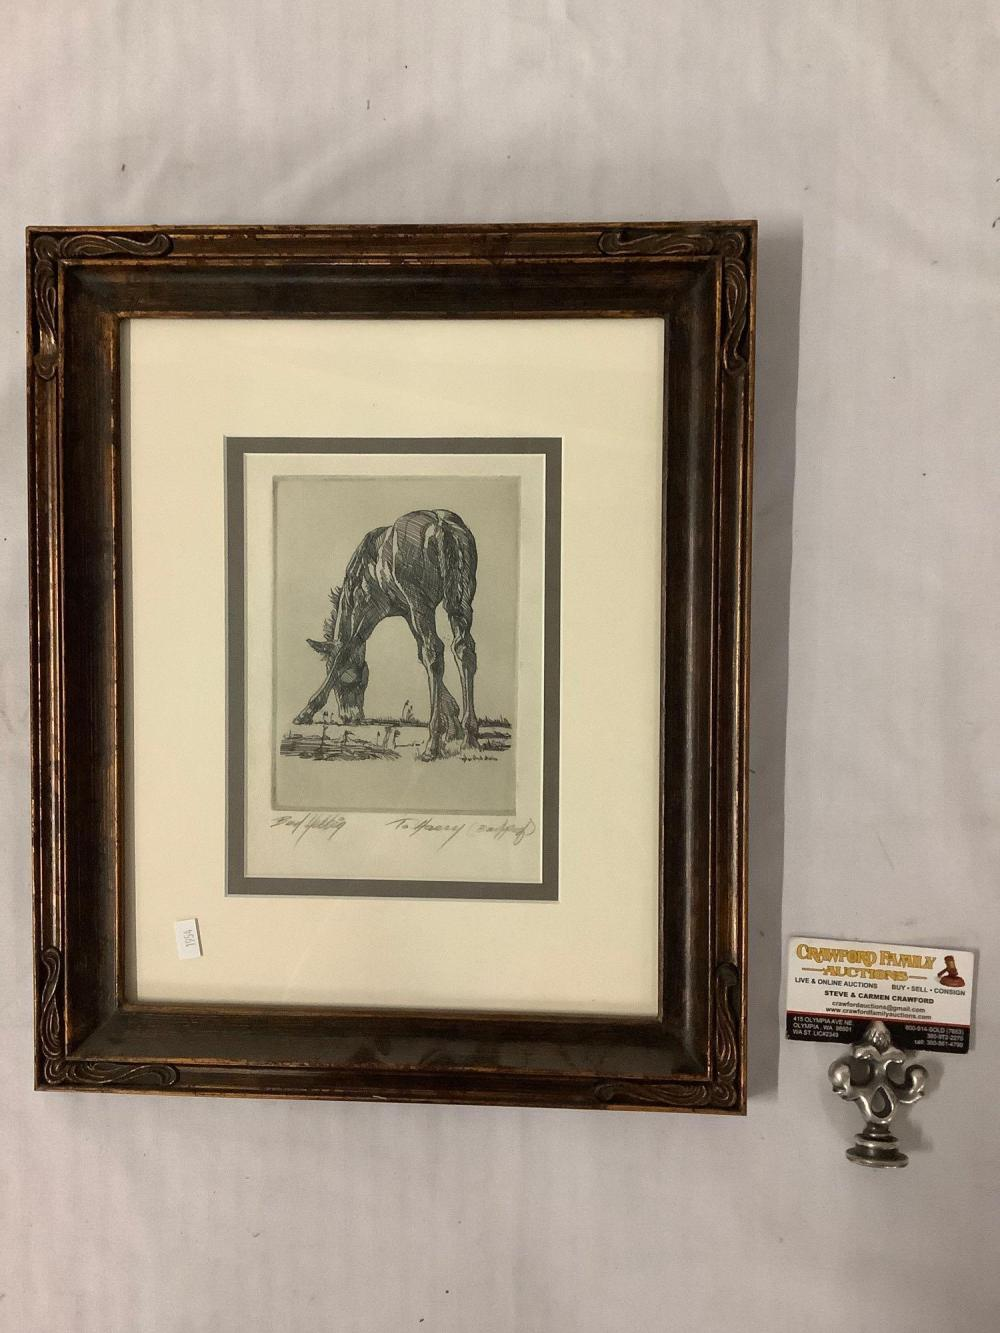 Lot 288: Vintage framed block print artist proof of a drinking horse by Bud Helbig, inscribed : to Harry